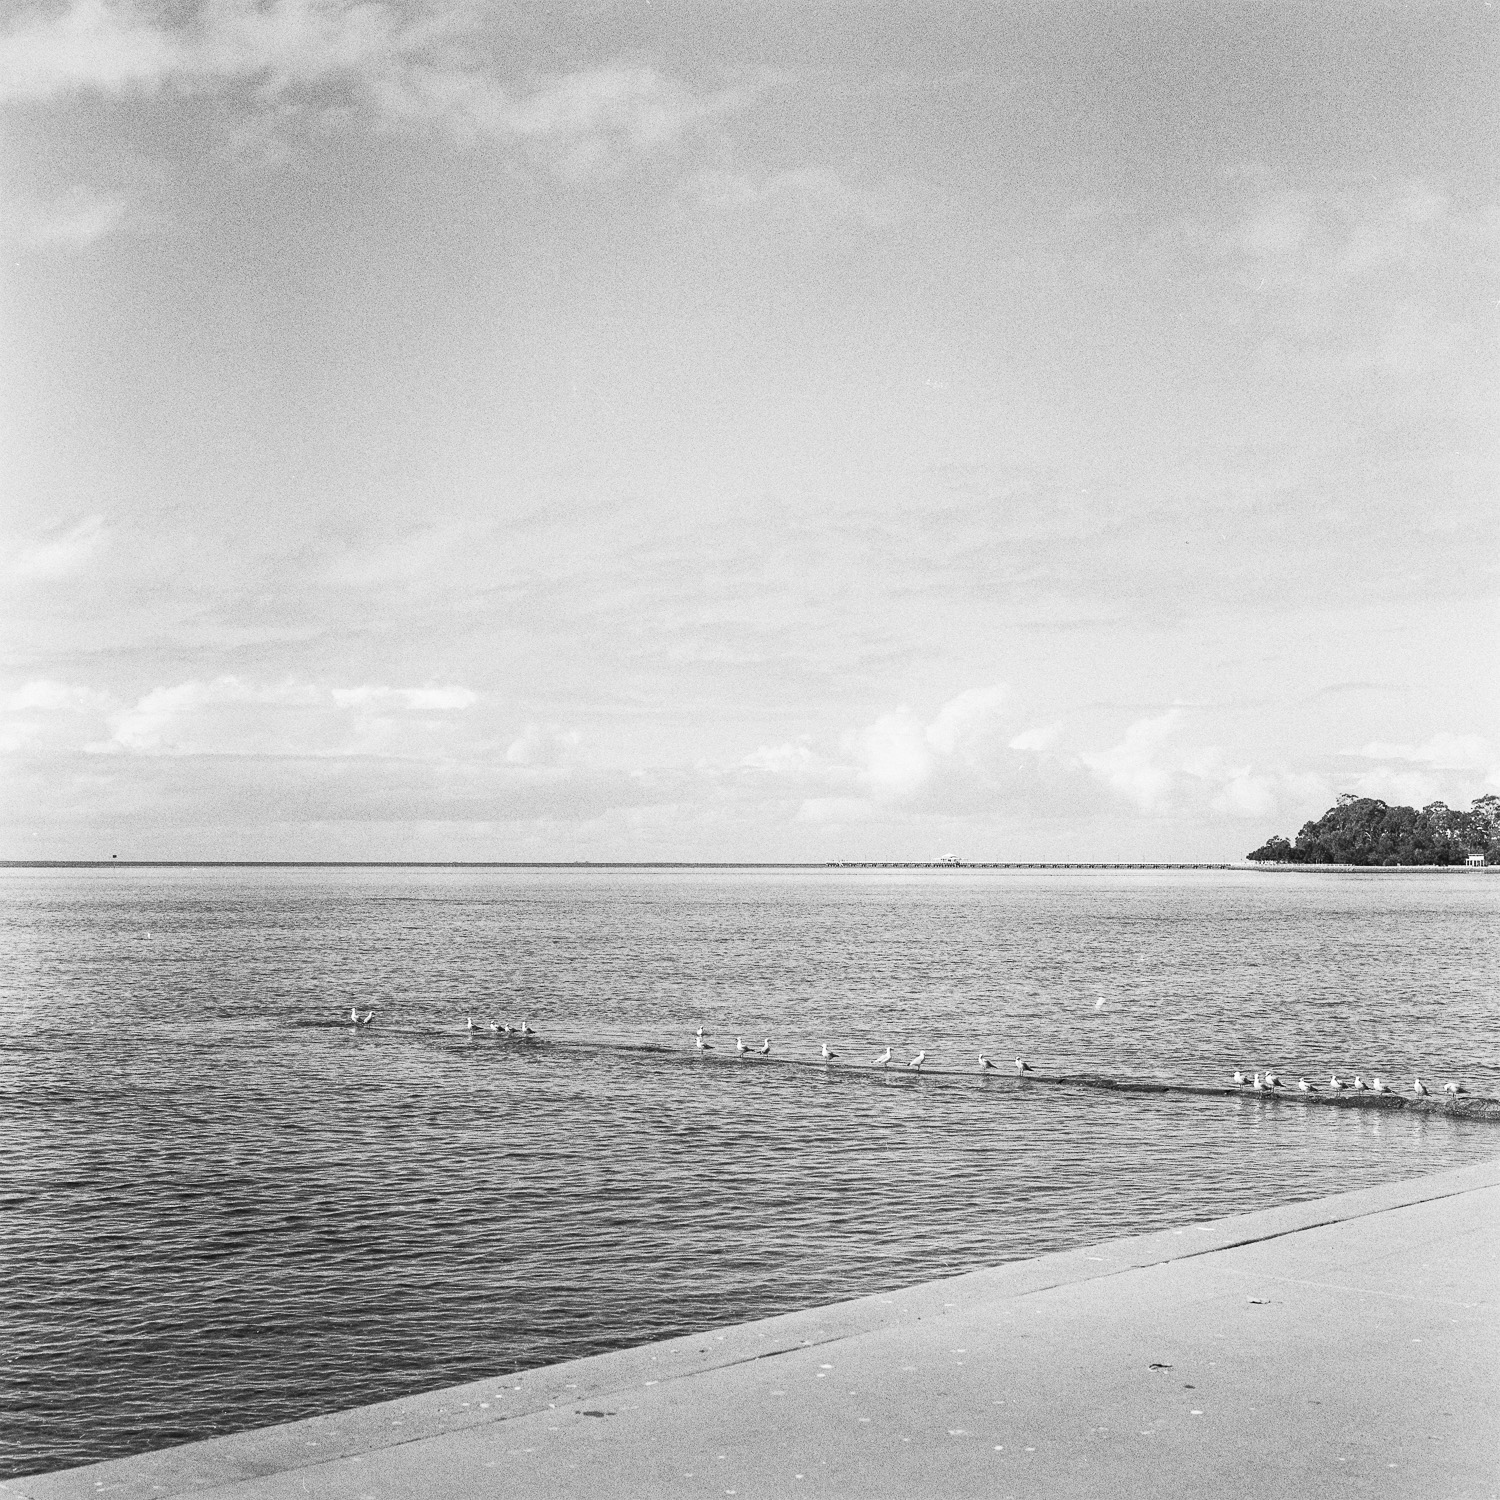 Shorncliffe Pier on the horizon.